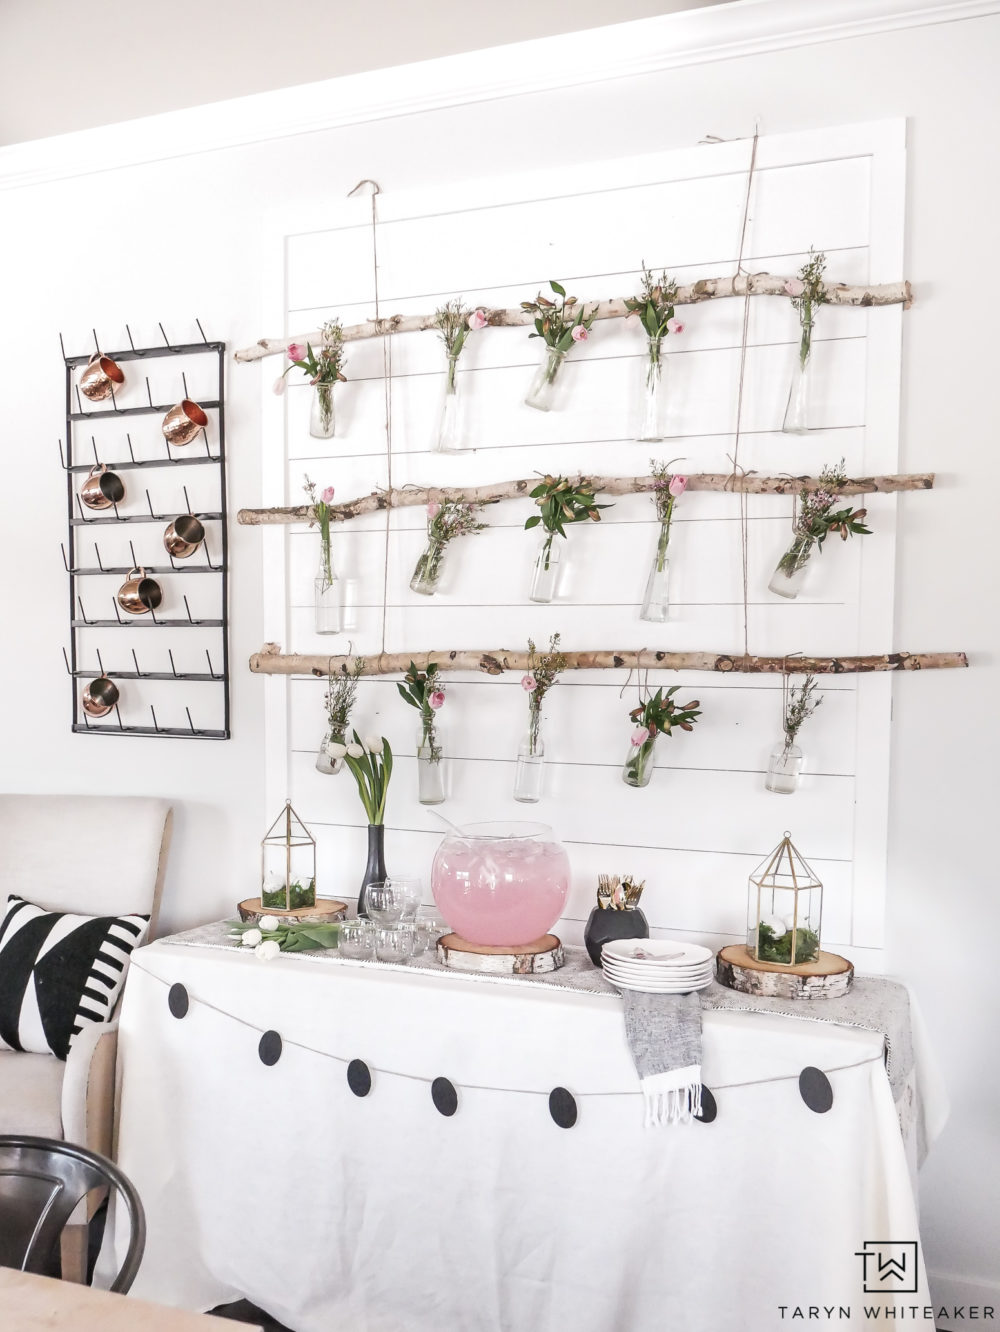 Great this DIY Hanging Floral Backdrop that is perfect for a spring or Easter entertaining! These Hanging Jars from birch branches are an easy DIY project that will wow your guests!